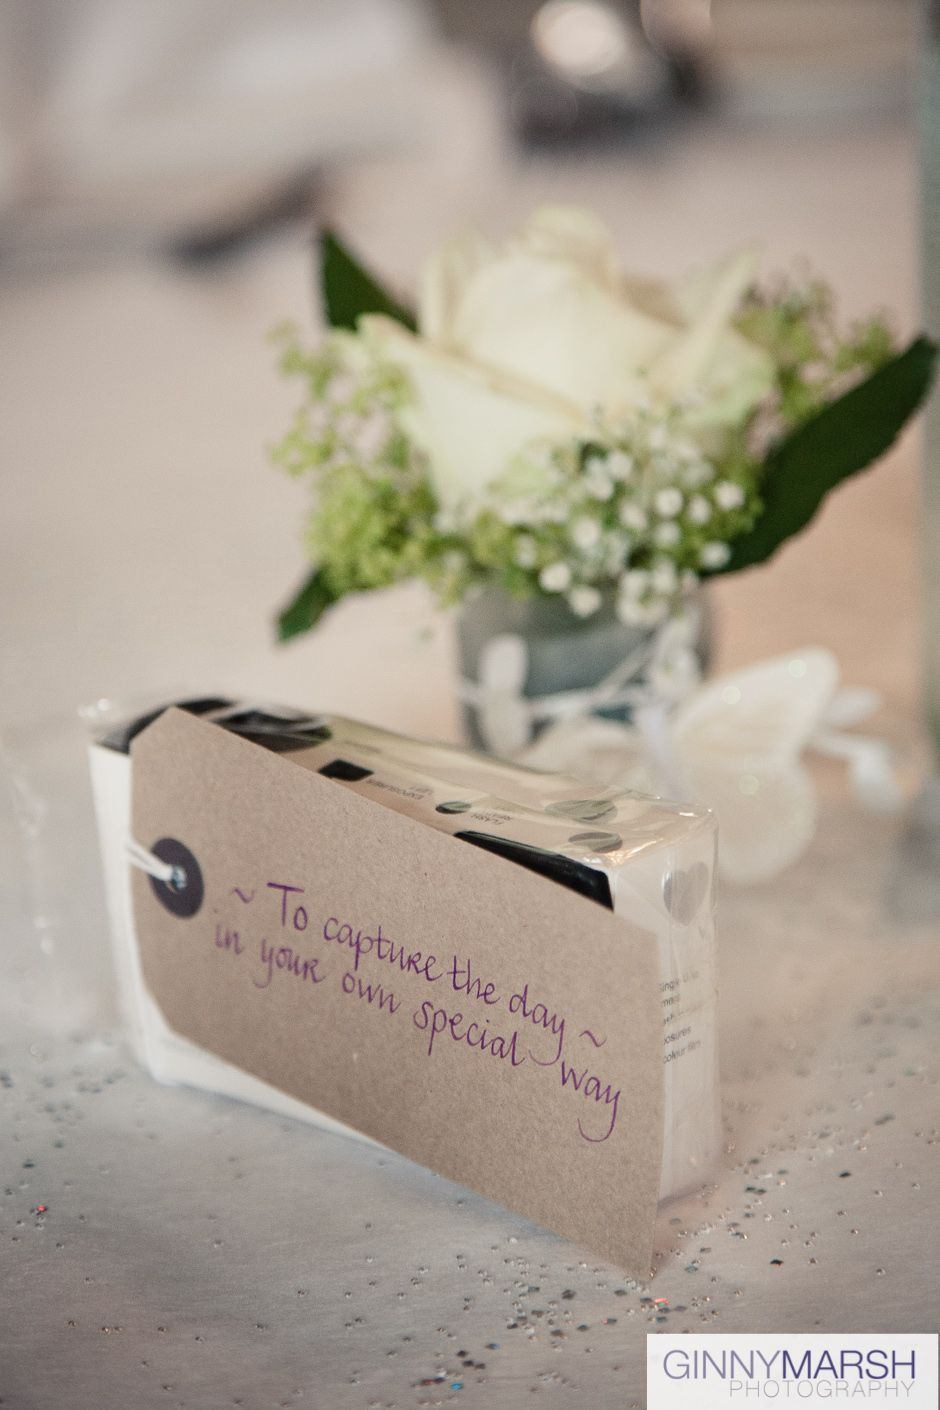 Ginny Marsh Photography Weddings Mercure Bush Hotel Farnham Table Decorations Favours